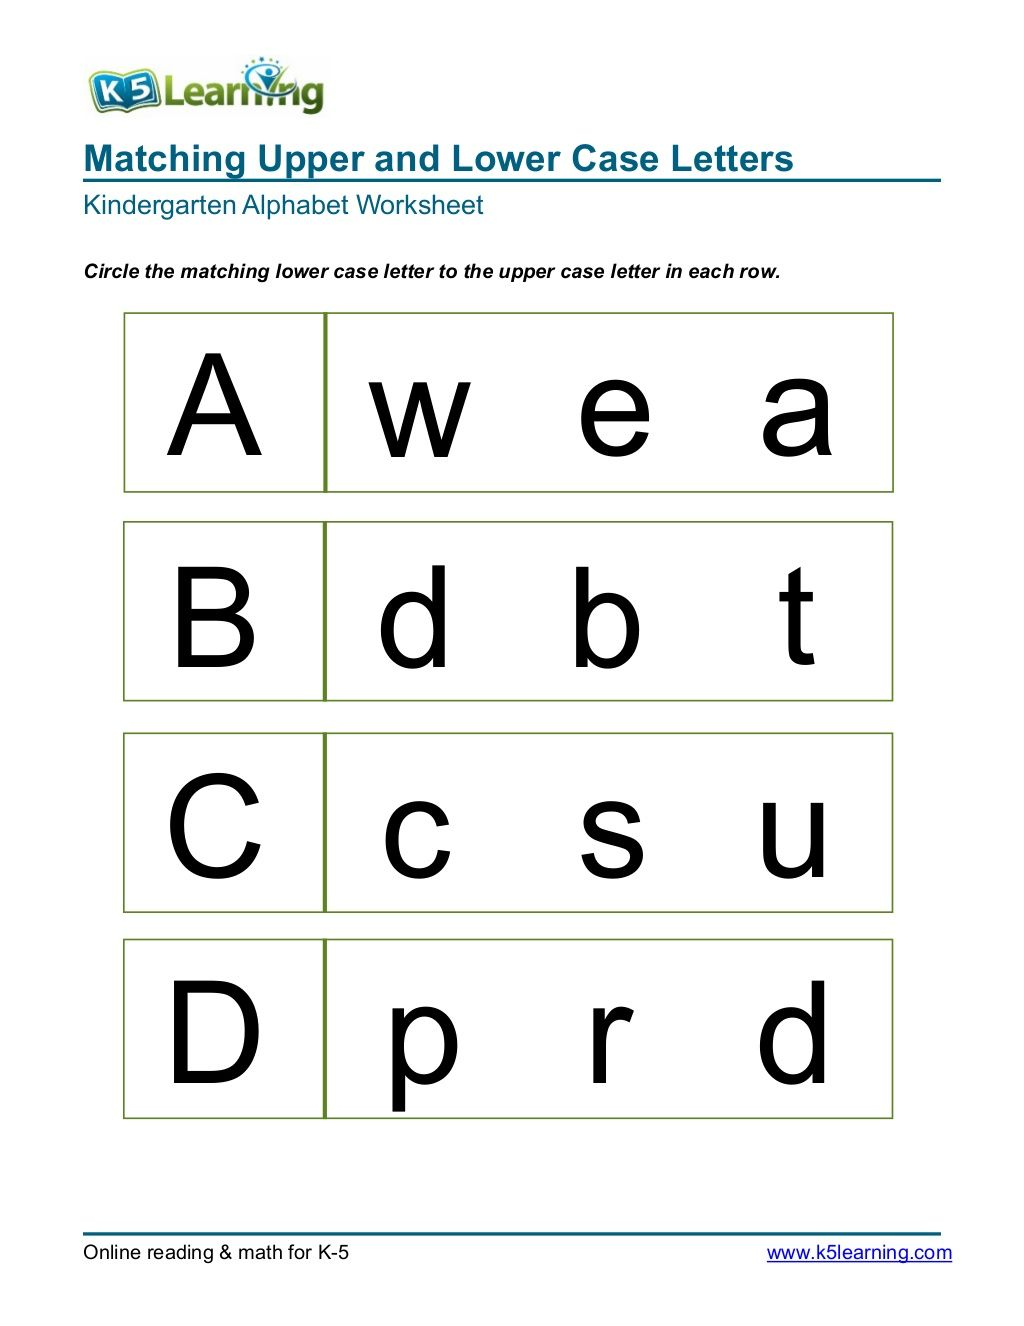 Matching Upper And Lower Case Letters Kindergarten Alphabet Workshe Alphabet Worksheets Kindergarten Letter Worksheets Kindergarten Alphabet Letter Worksheets